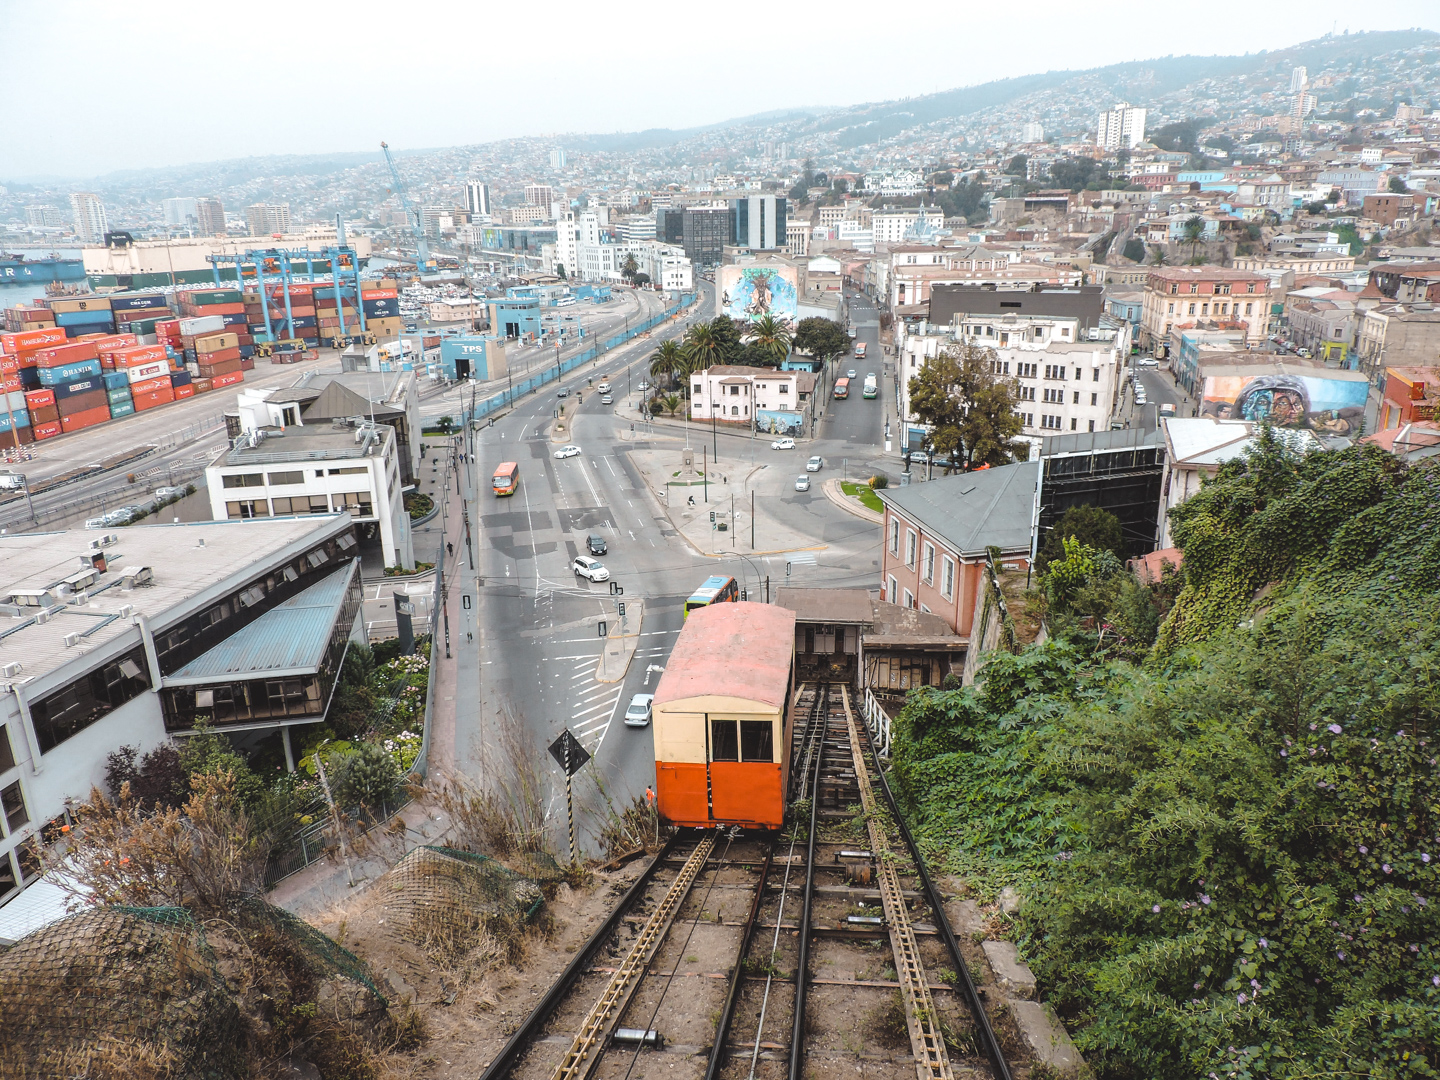 Ascensor in Valparaiso